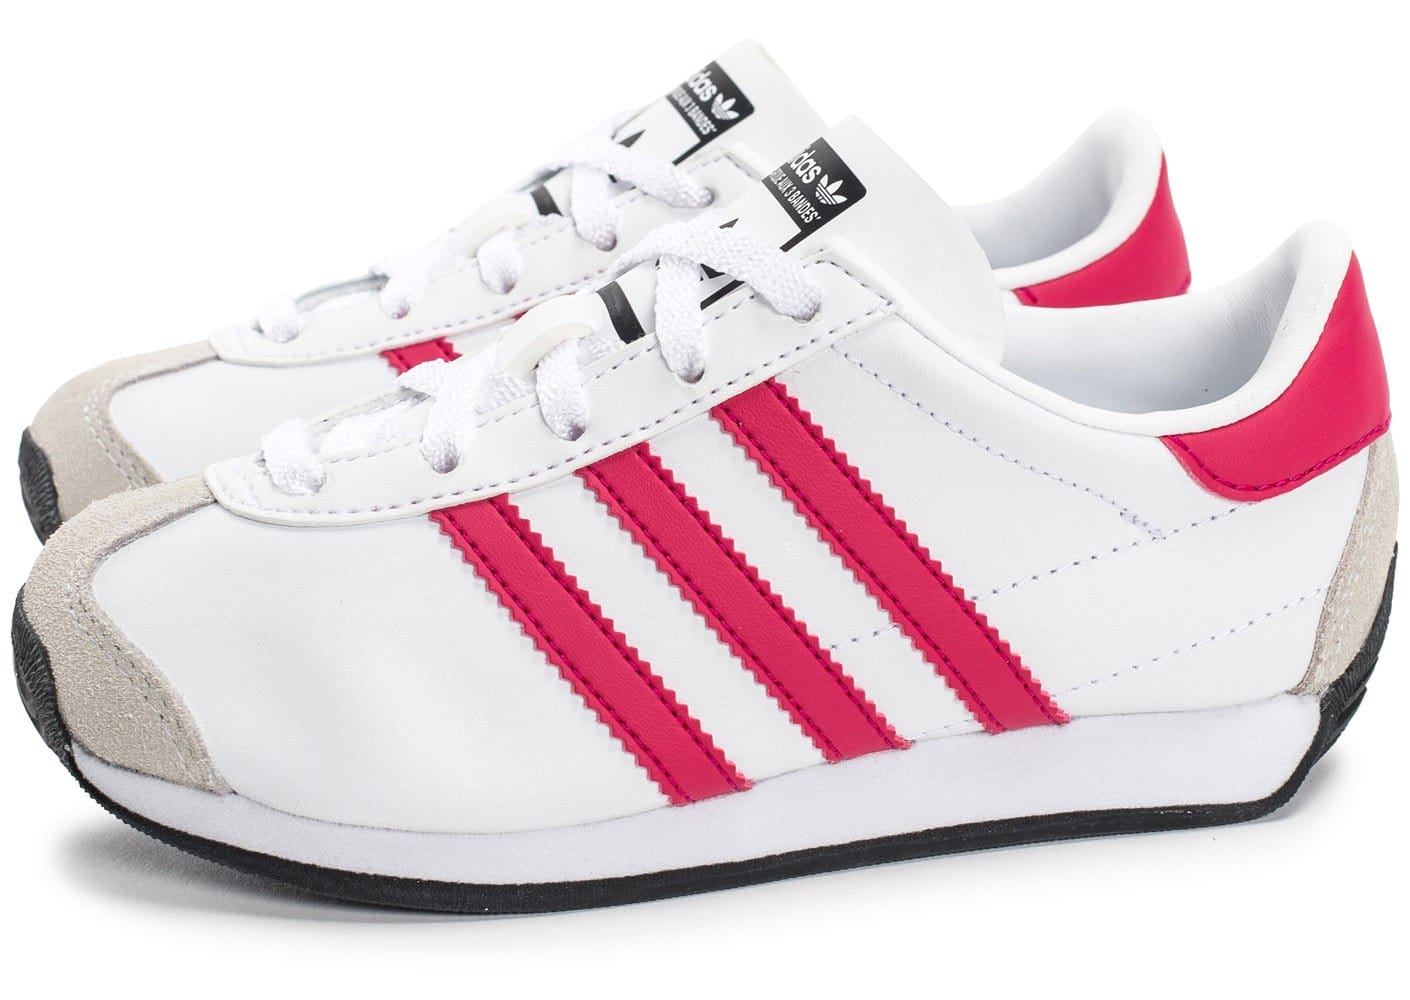 adidas Country OG Enfant blanche et rose Chaussures adidas